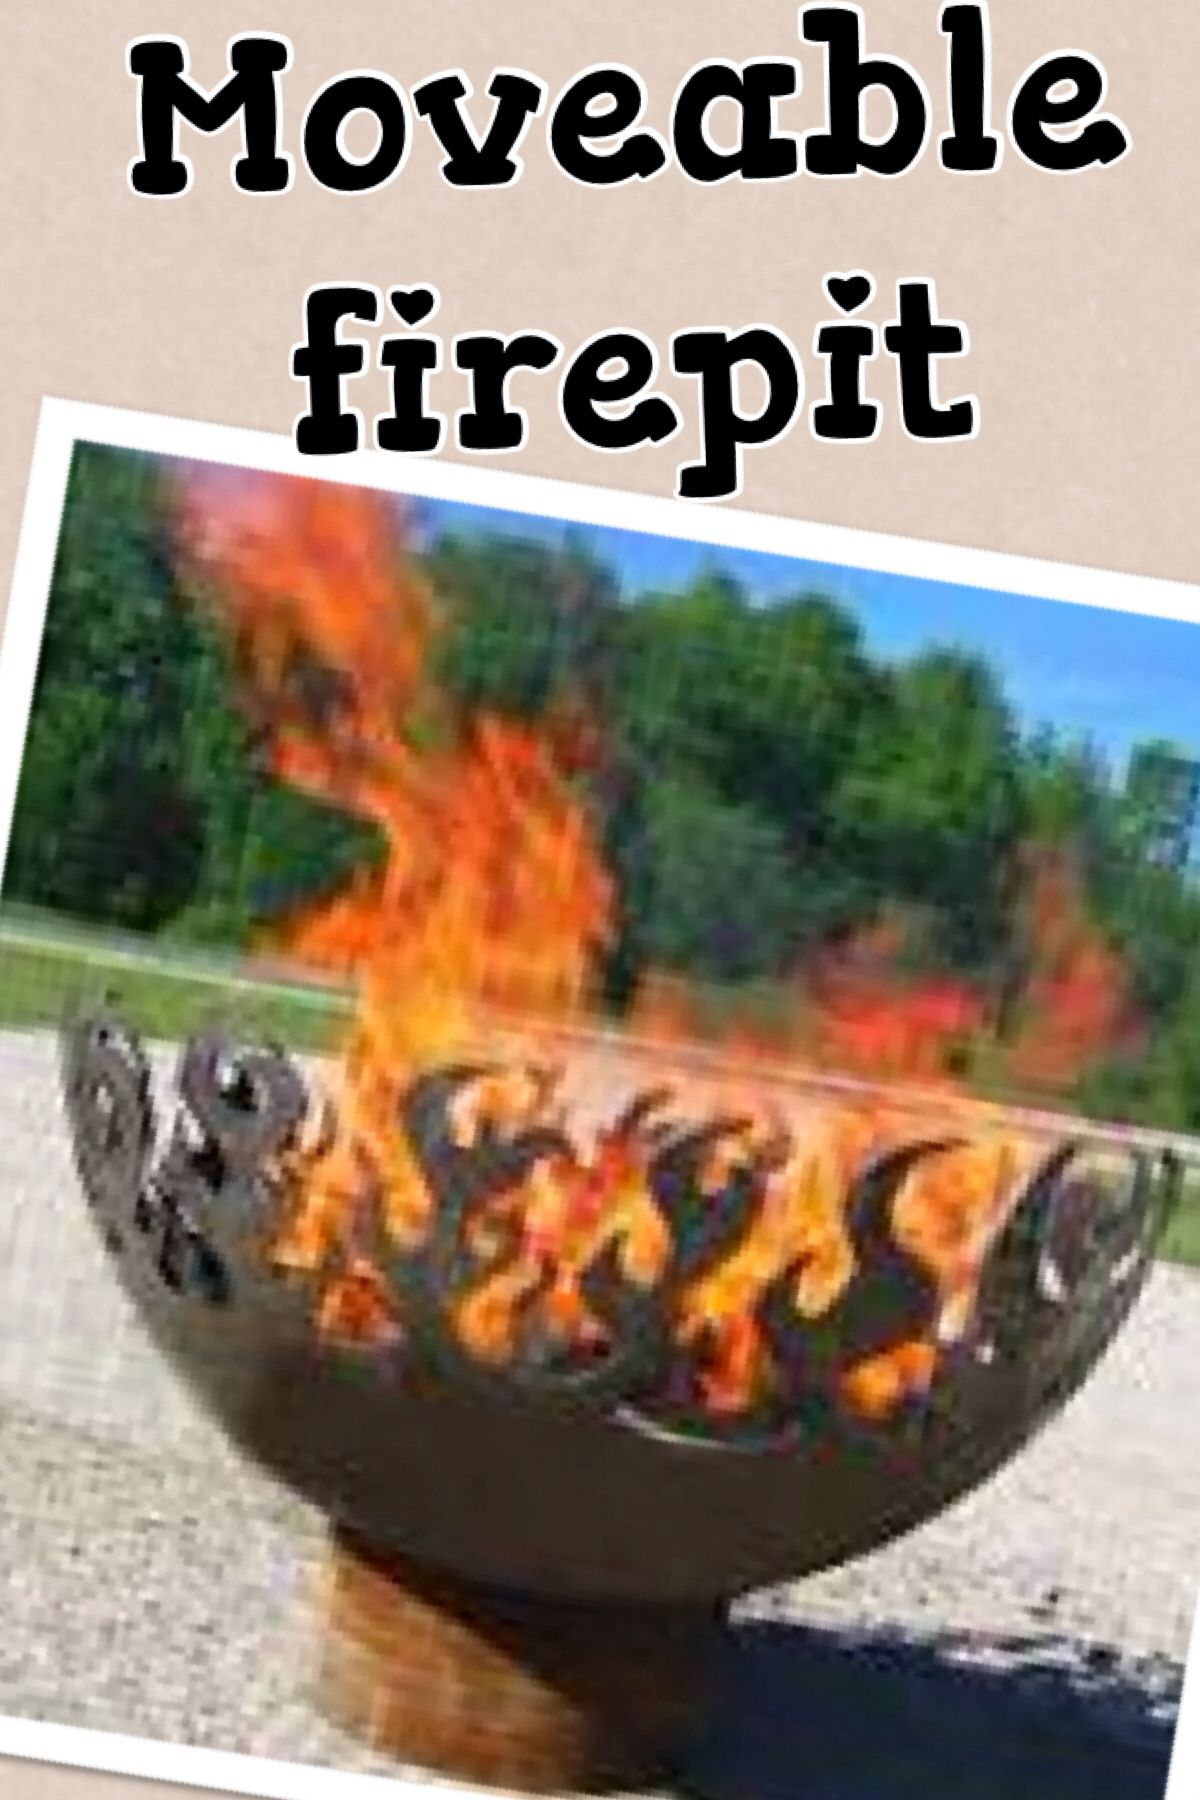 Moveable firepit